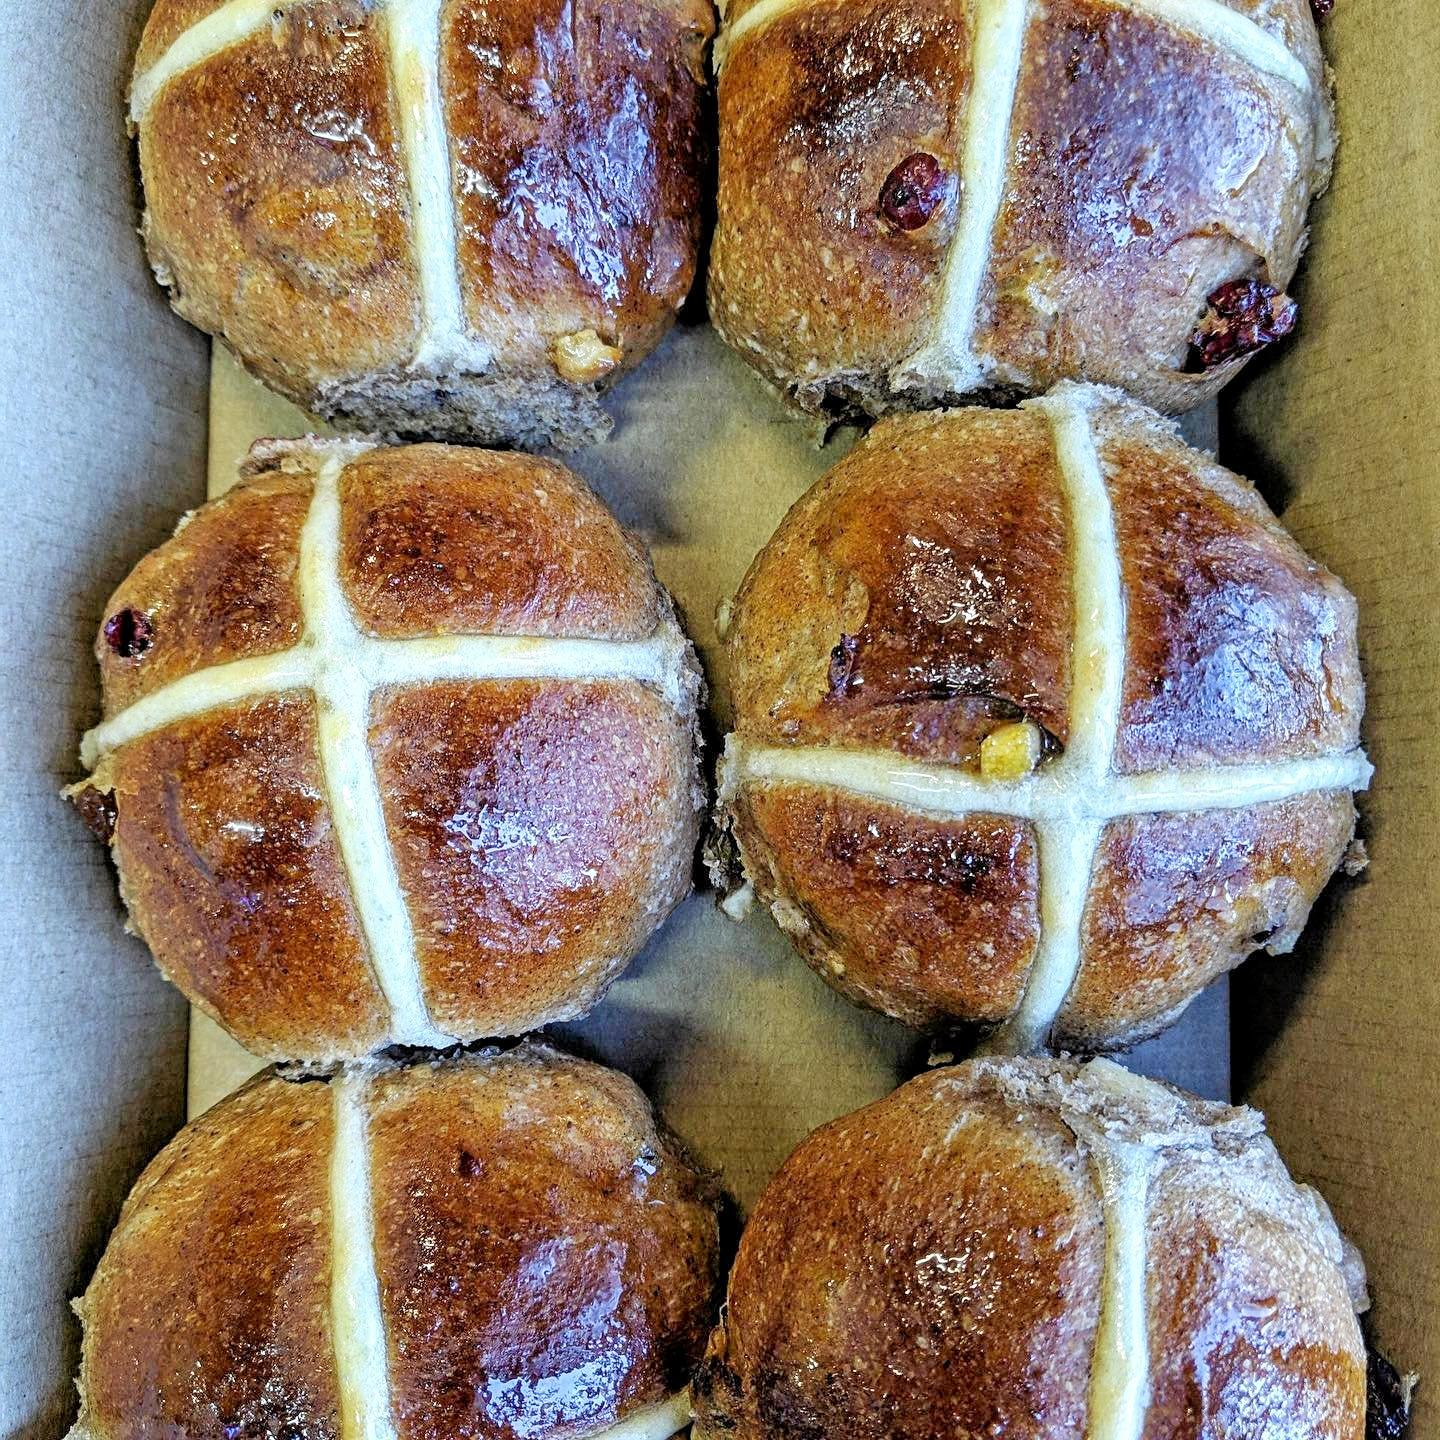 Easter treats around Toowoomba: Hot cross buns from Baker's Duck.